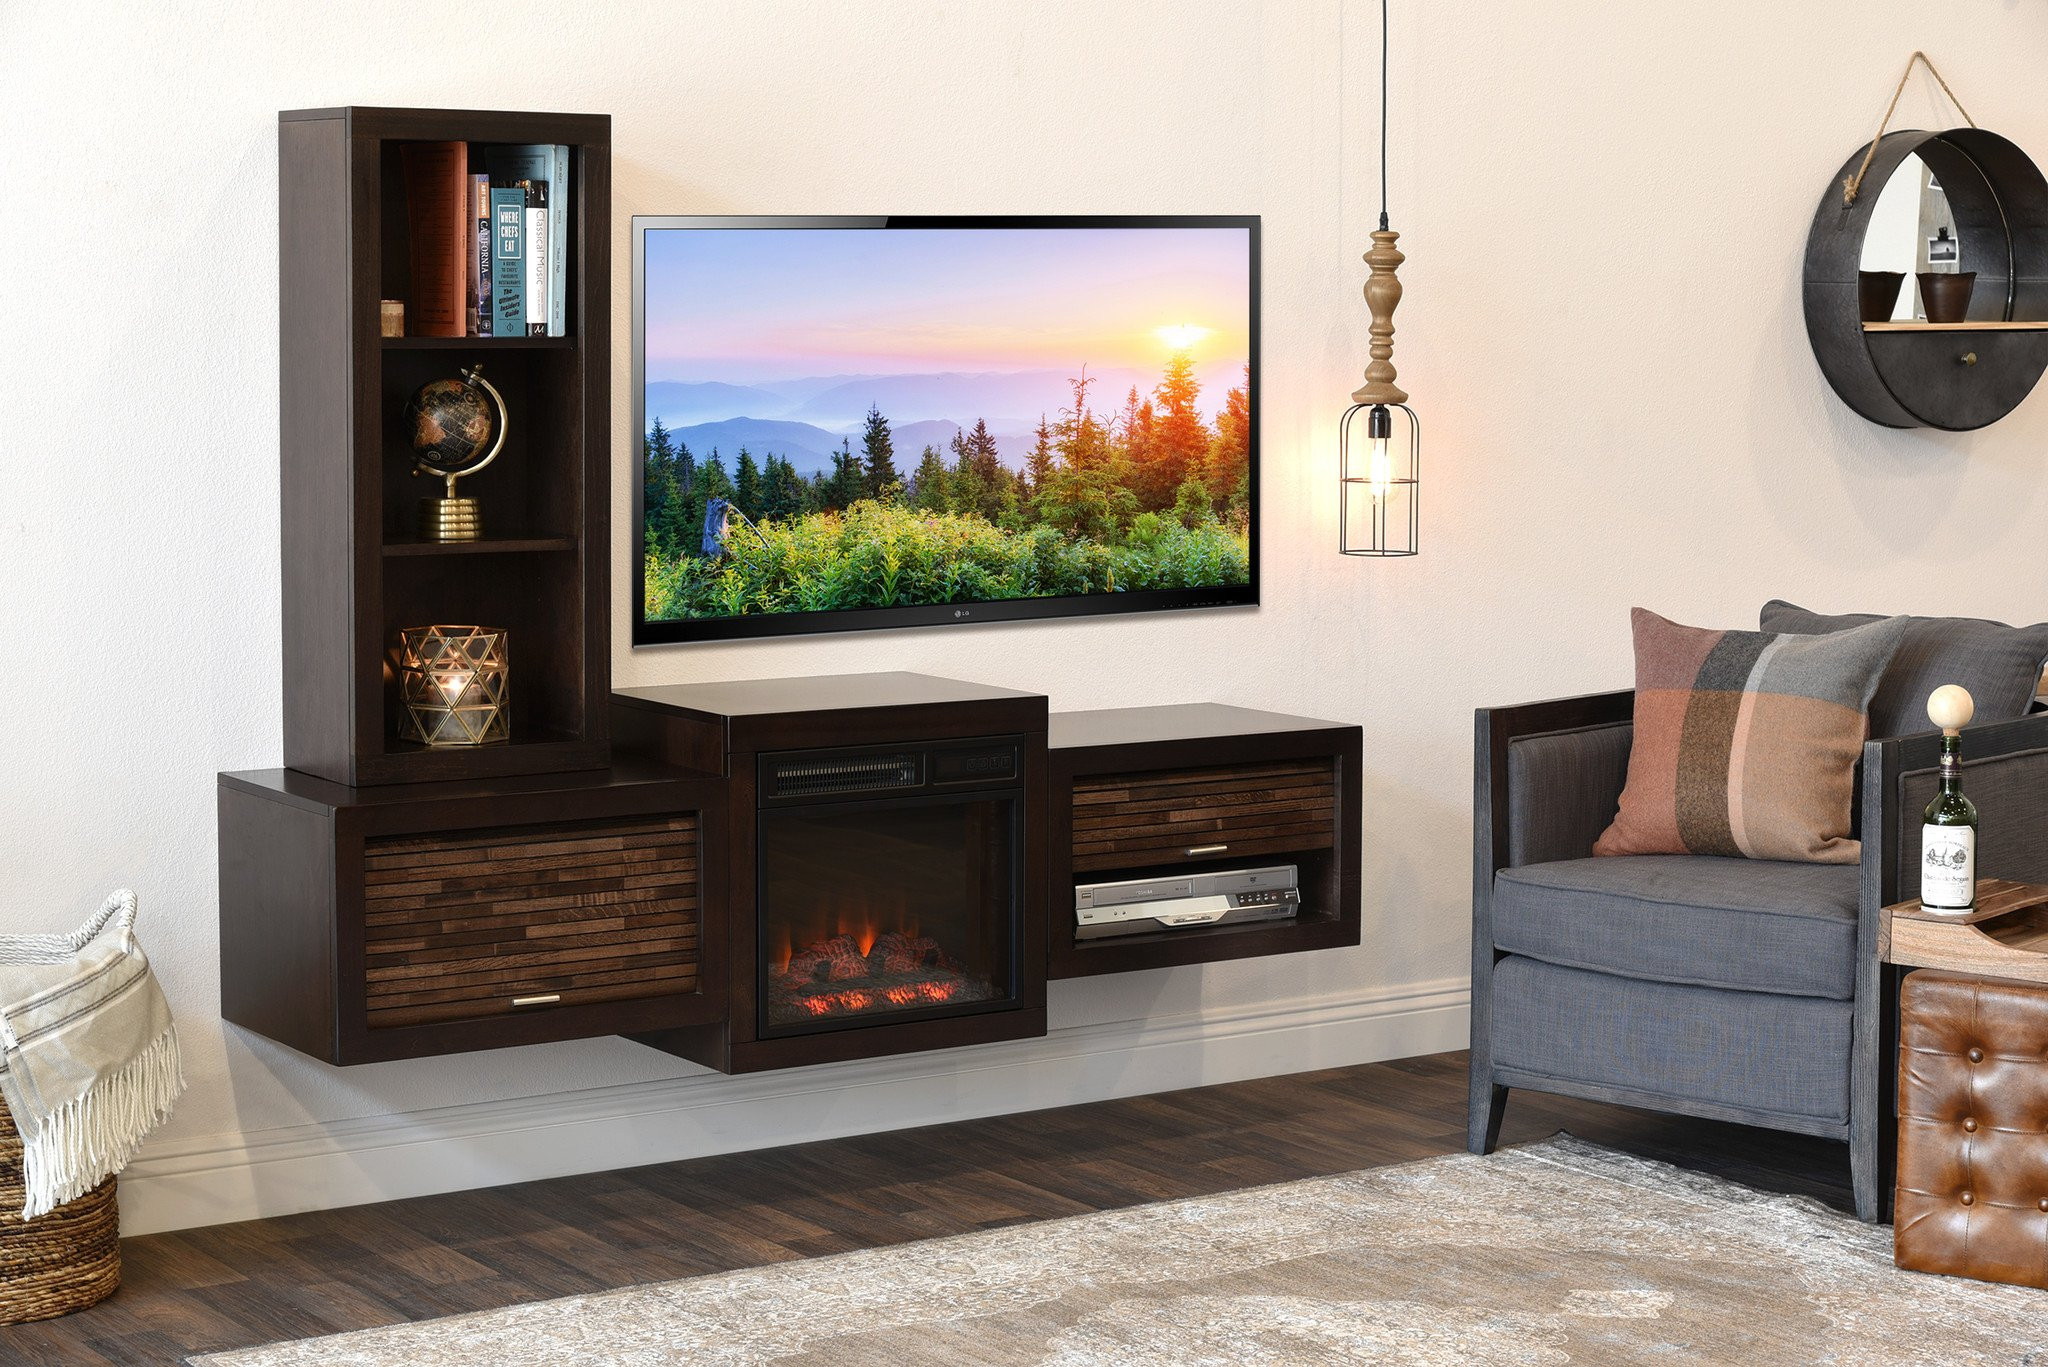 Best ideas about Wall Mount Tv Stand . Save or Pin Floating Wall Mount TV Stand With Fireplace and Bookcase Now.